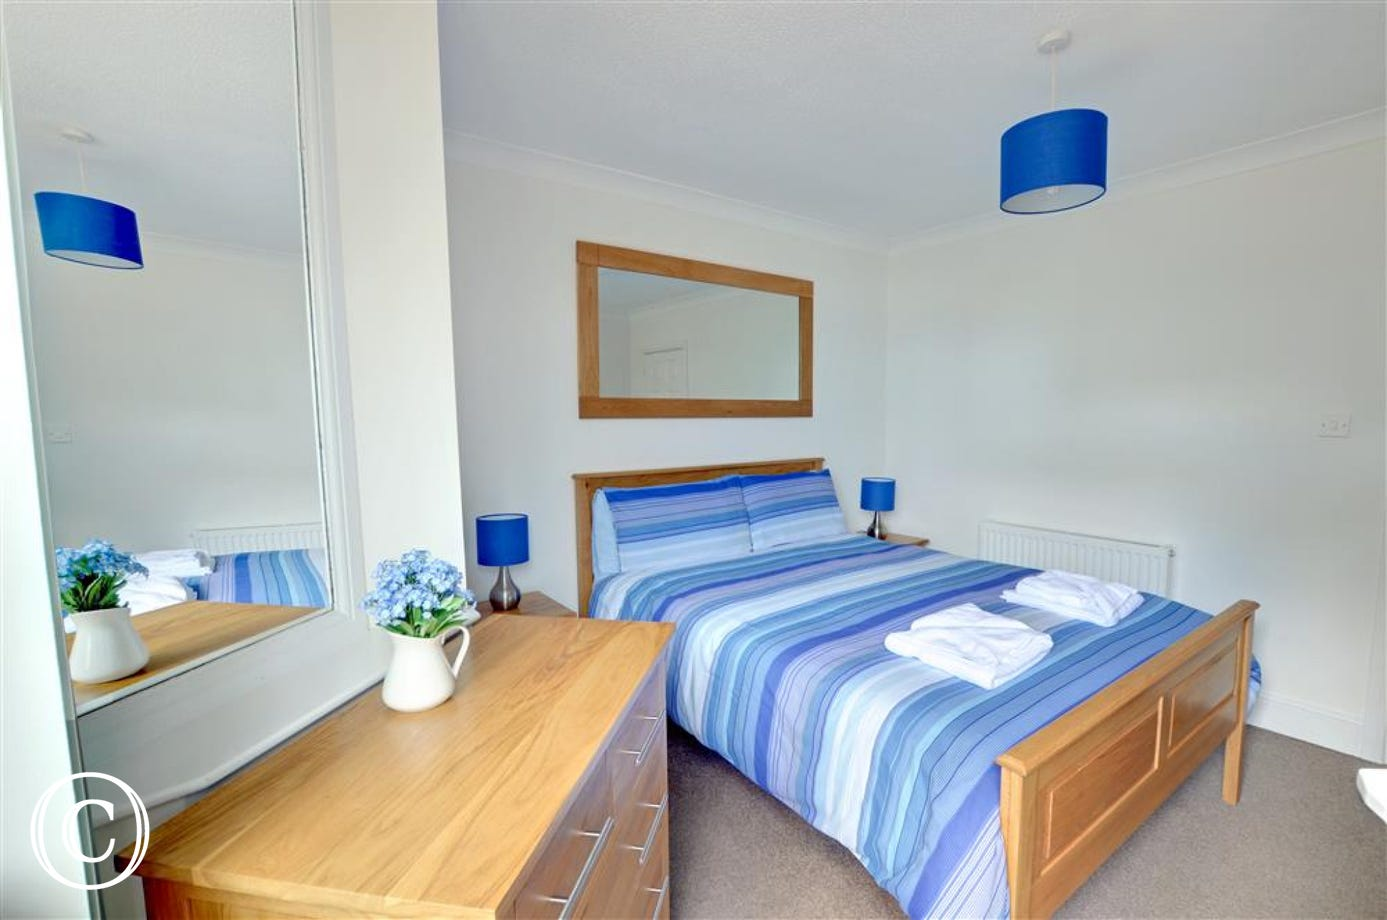 The lovely master bedroom with kingsize bed and ensuite bathroom